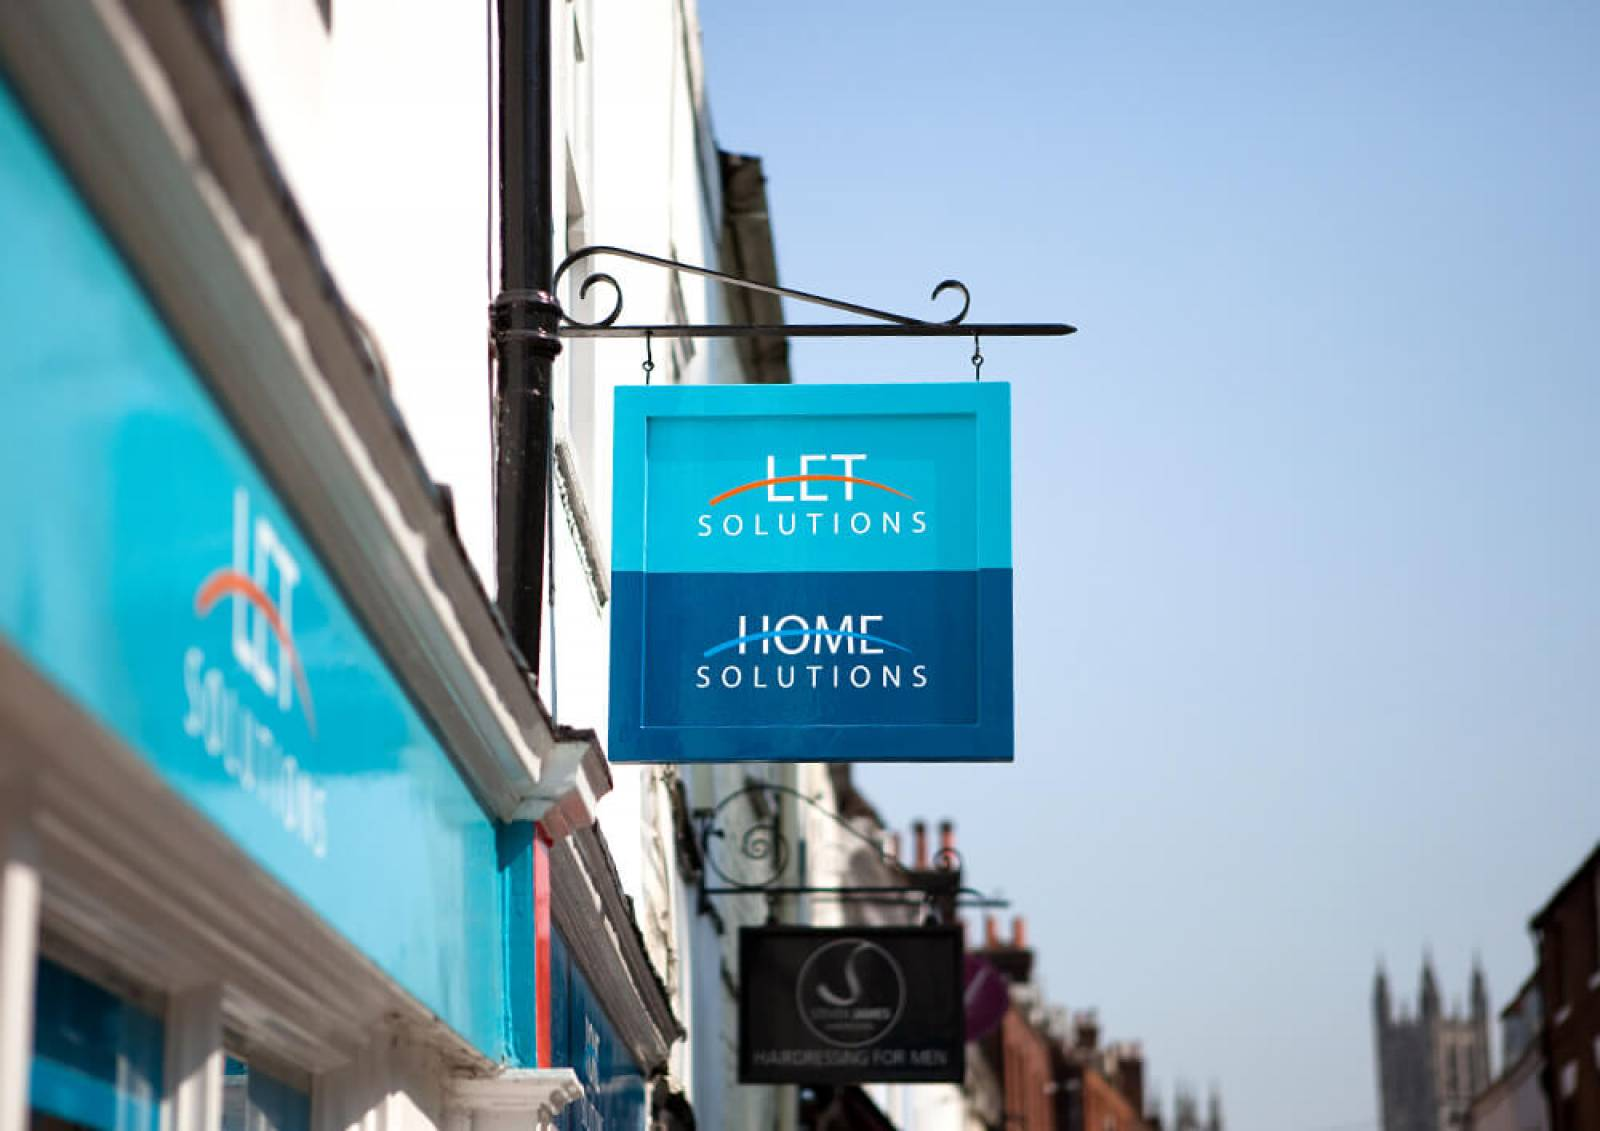 Signage-Let-1-Canterbury-Graphic-Design.jpg